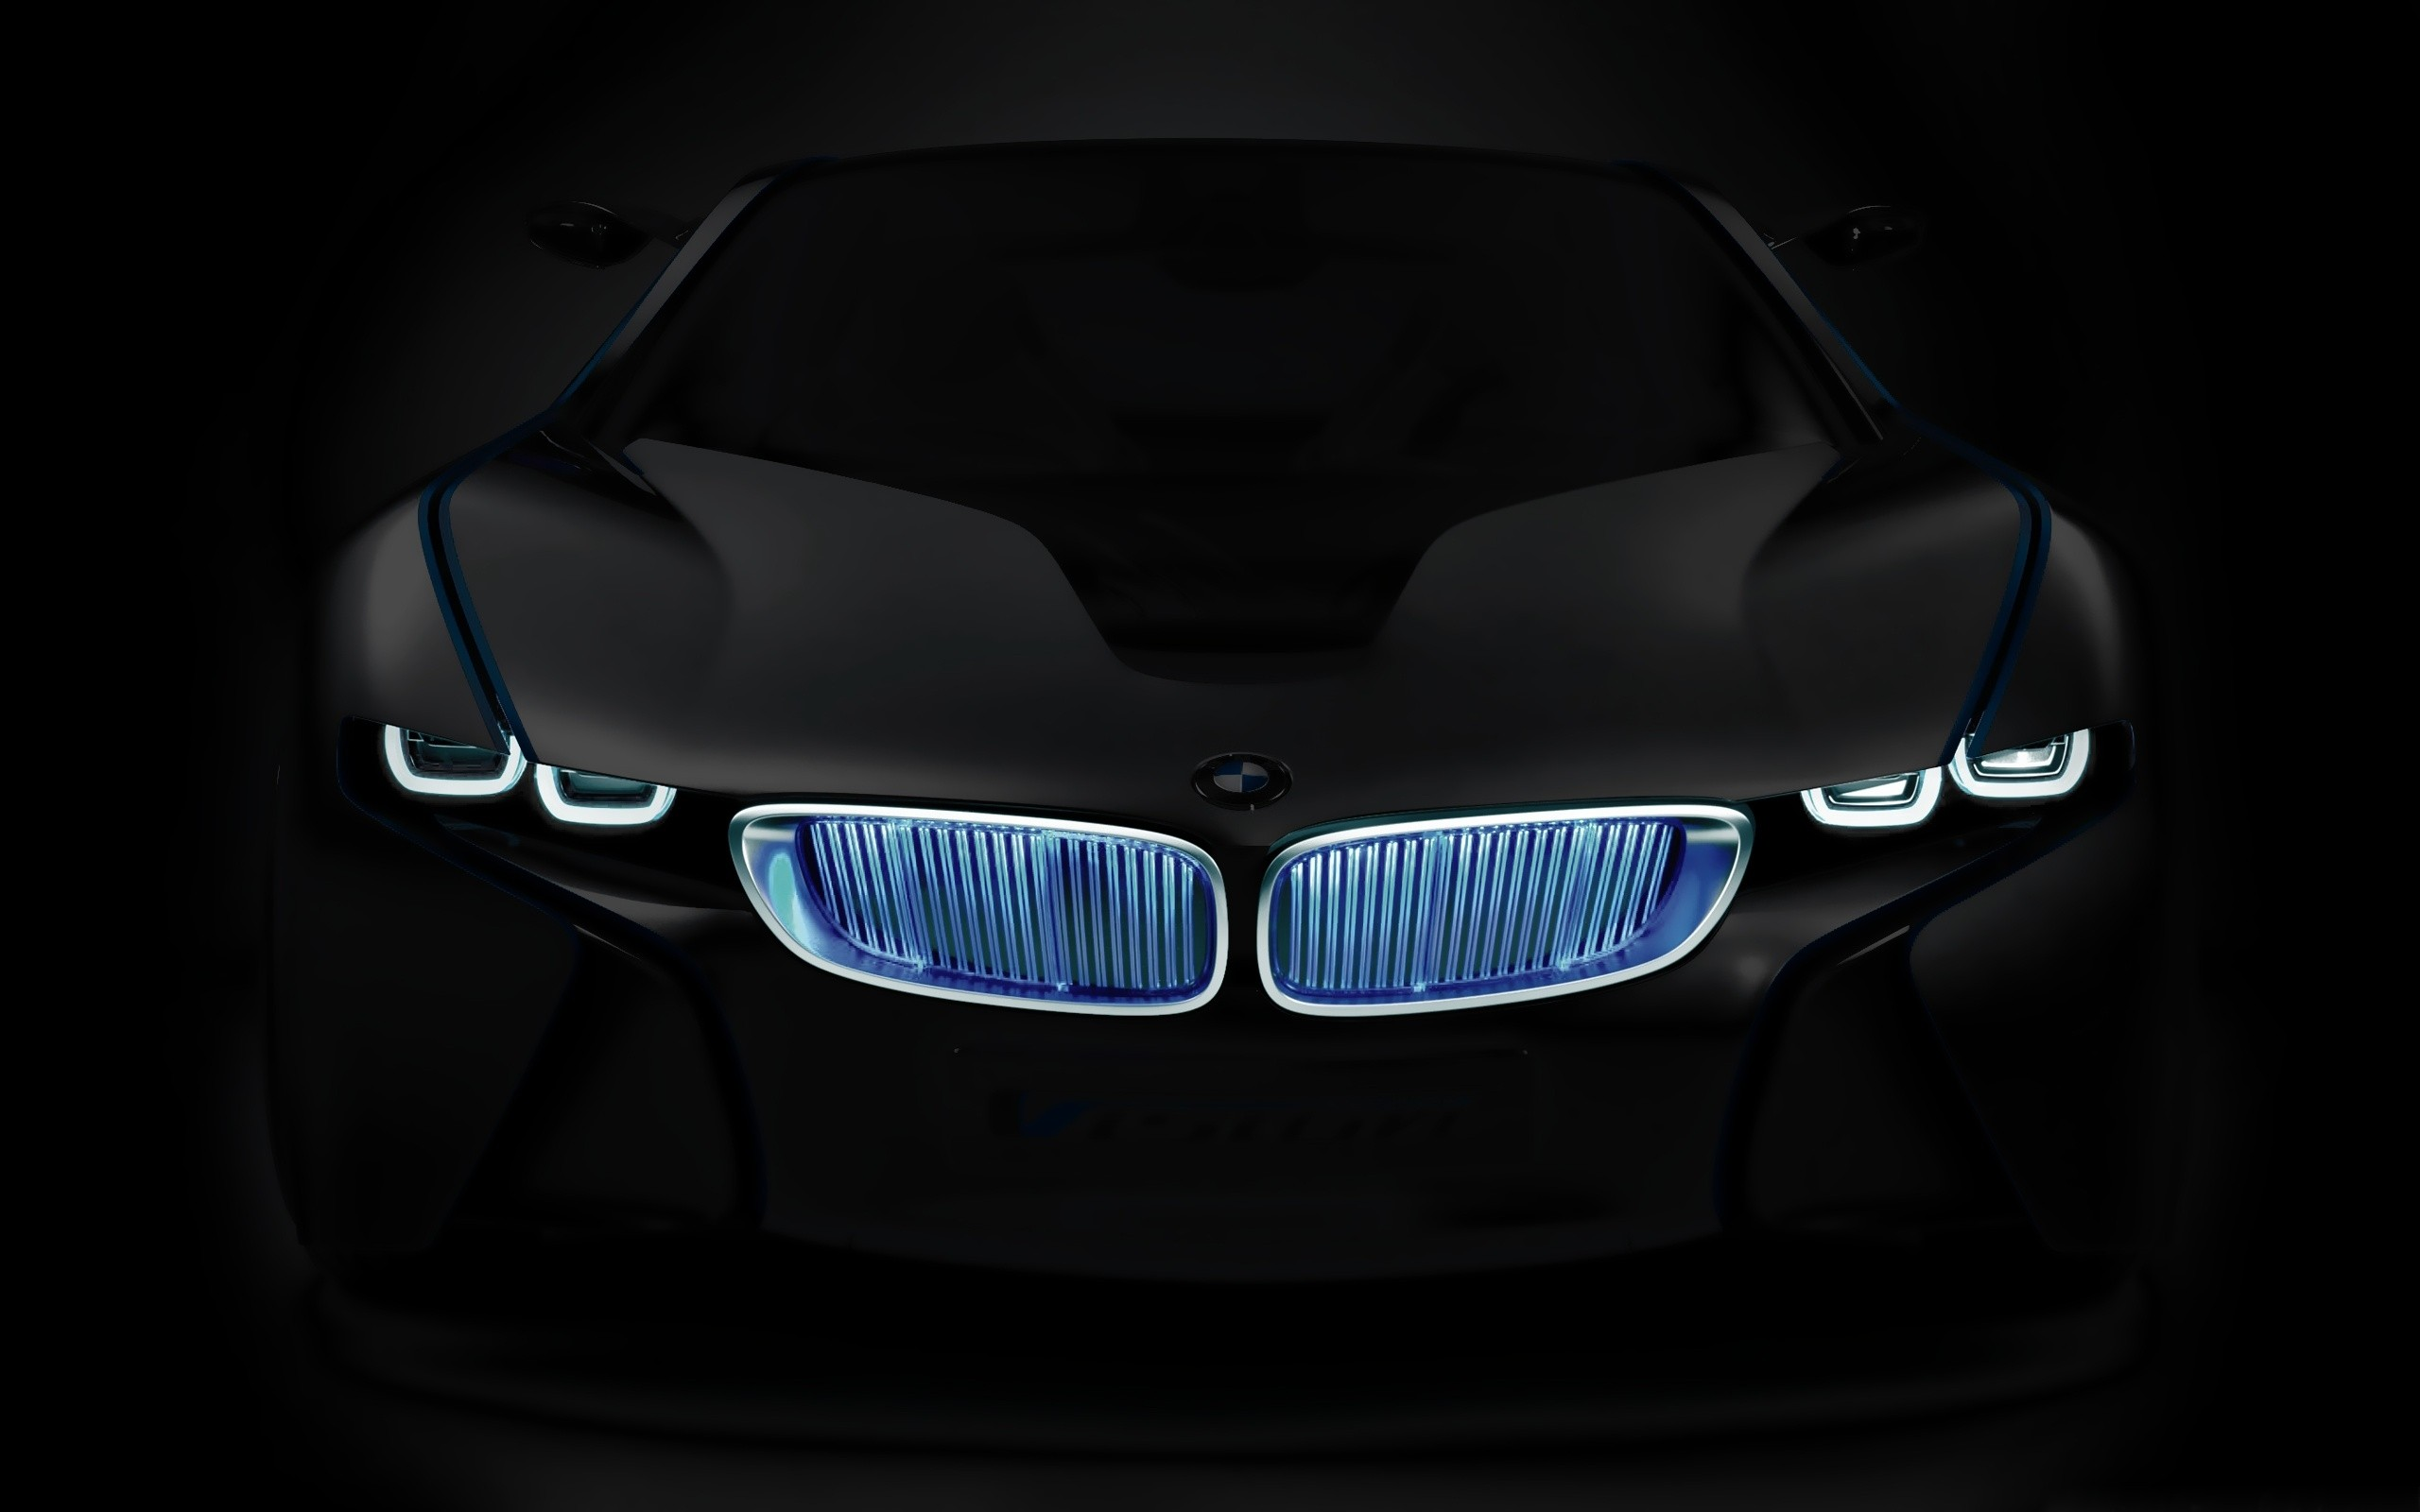 Bmw Car Image Hd Bmw Cars Hd Wallpapers Free Download Bmw Cars